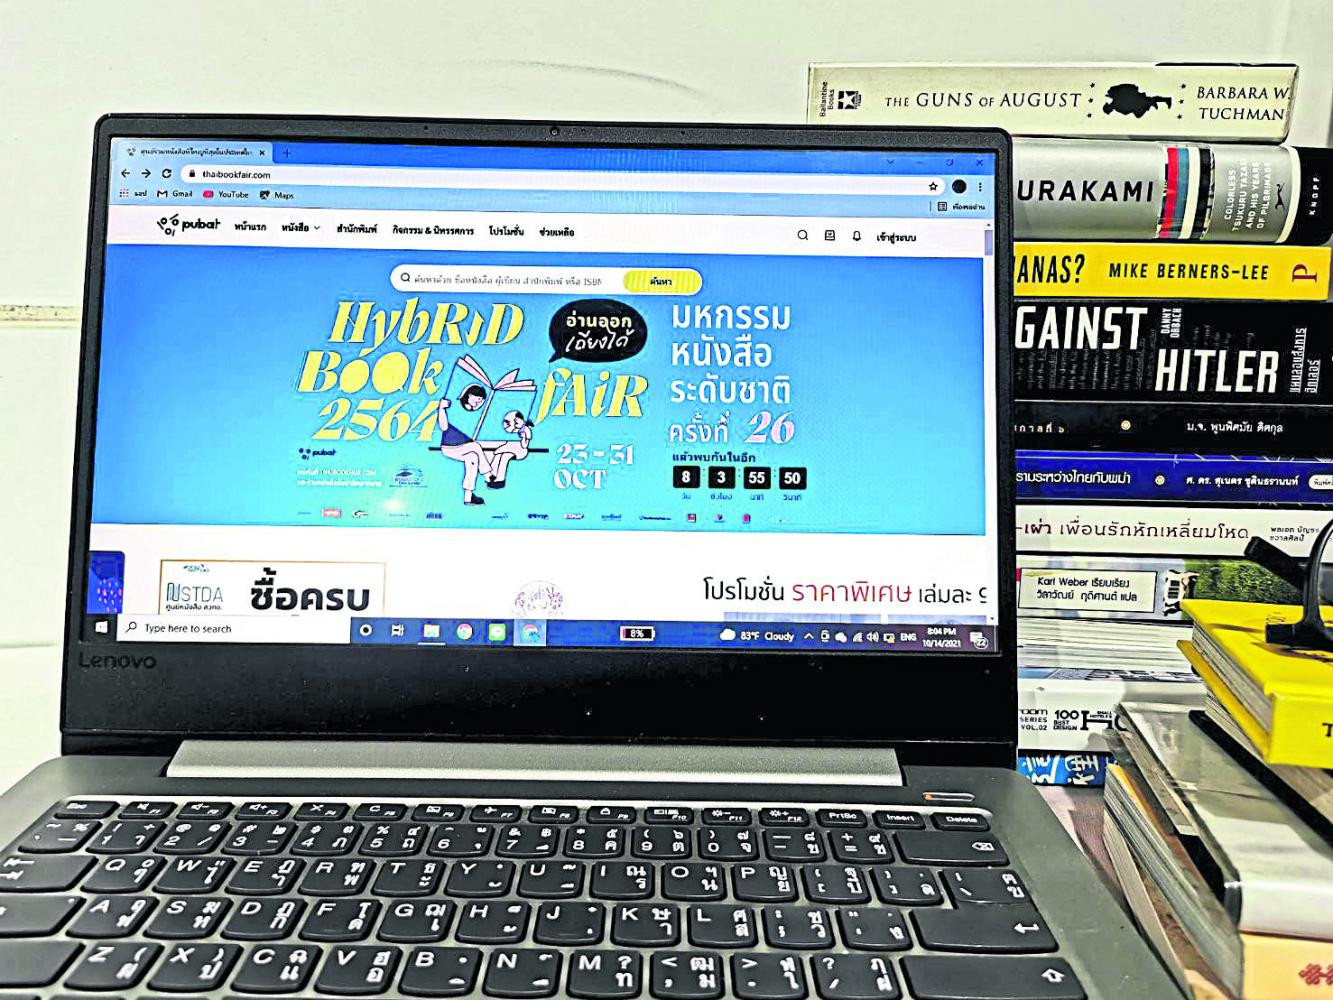 Excitement builds among book lovers